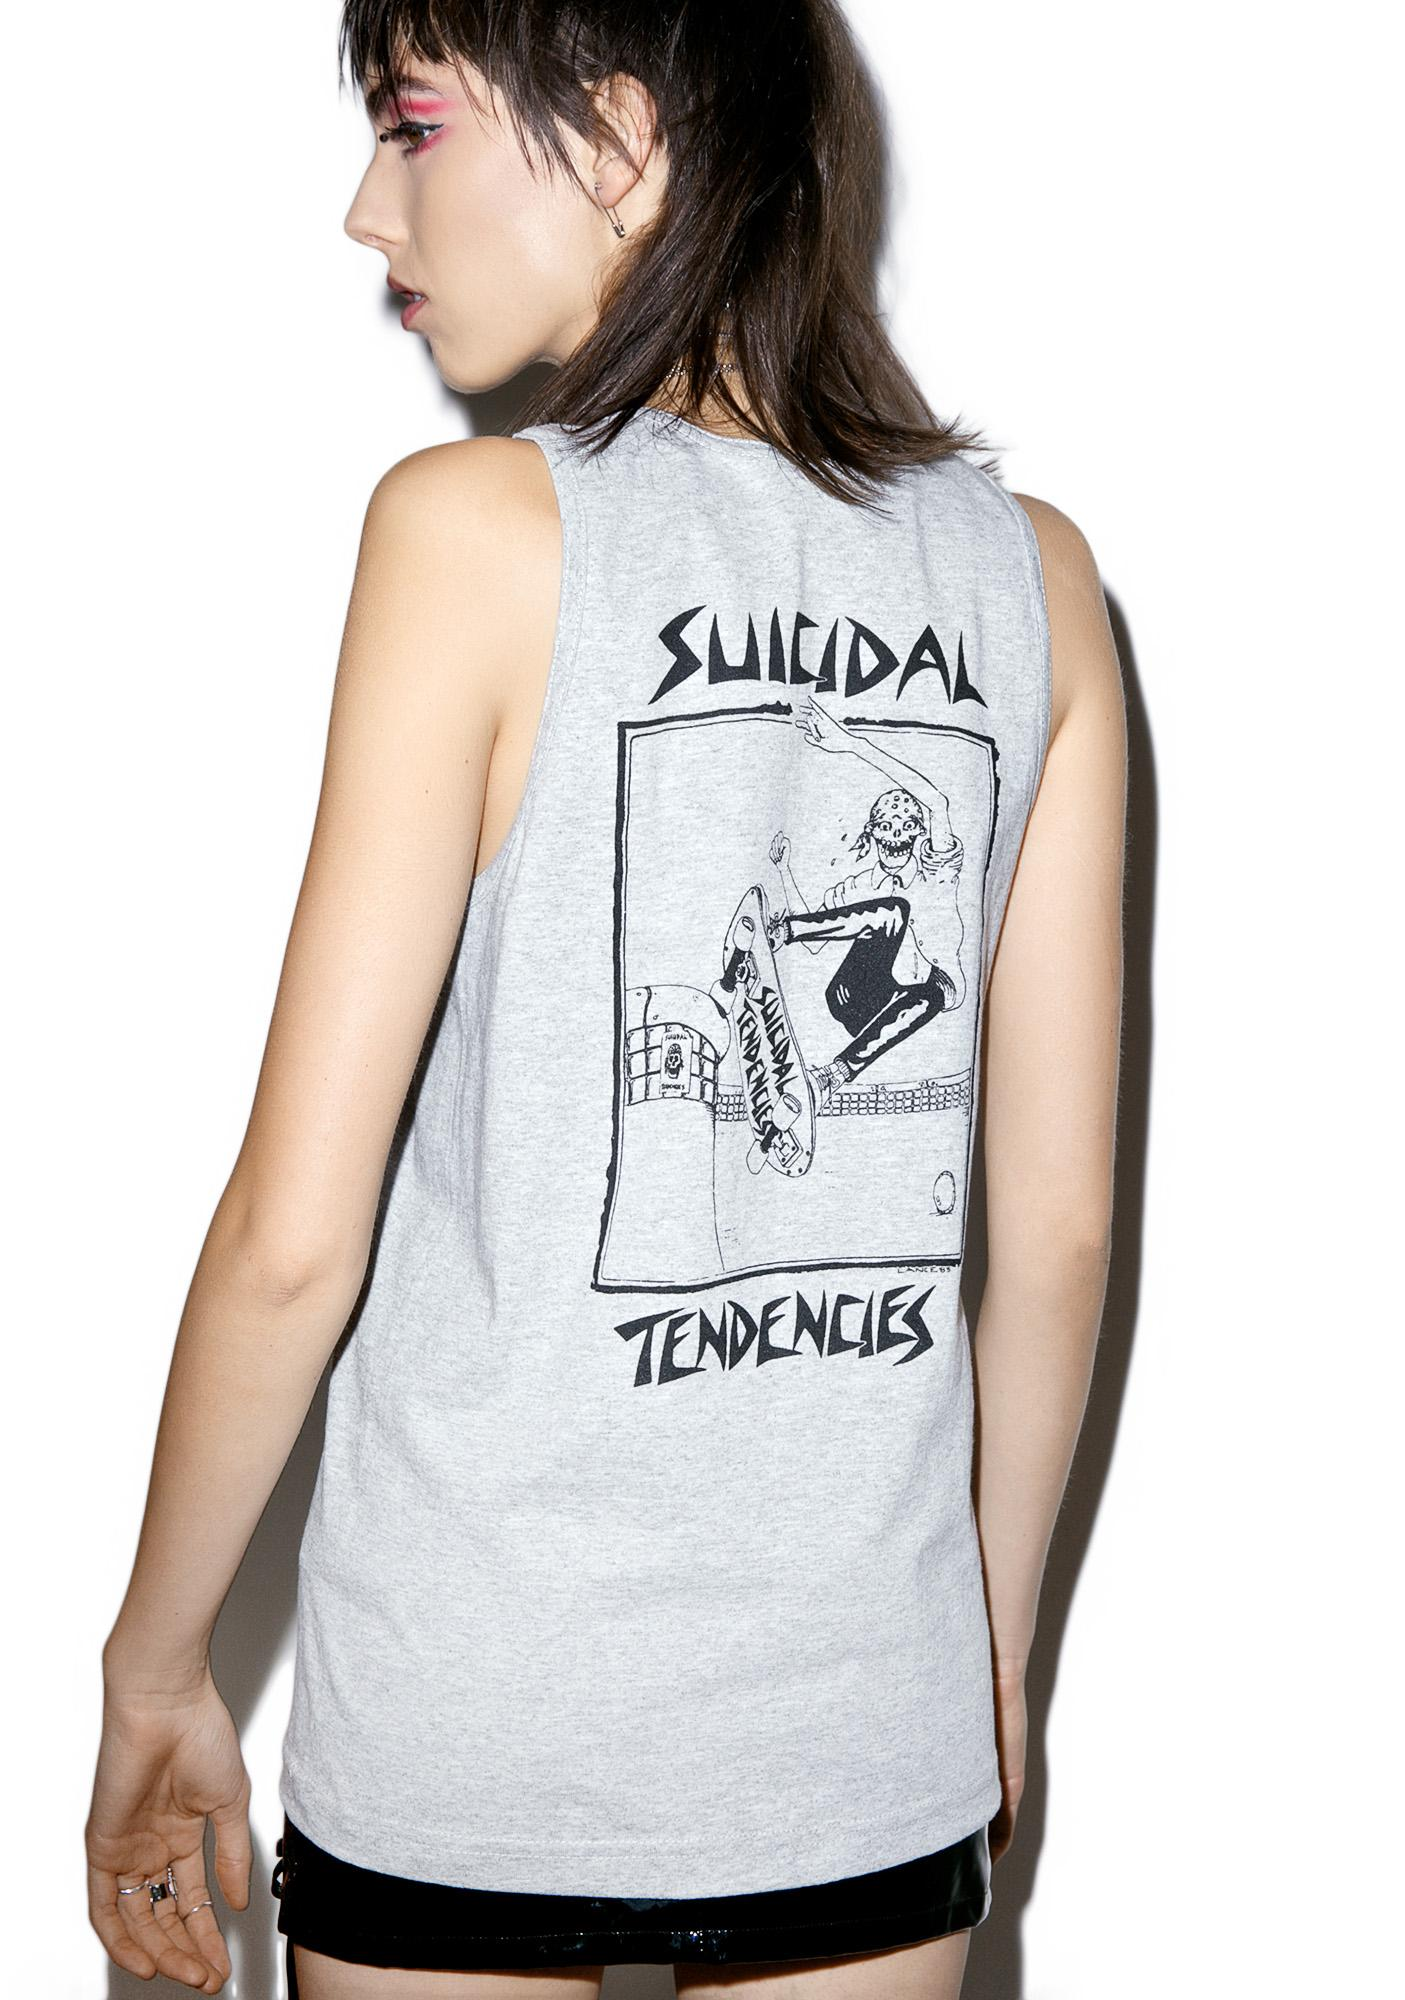 Suicidal Tendencies Old School Skater Tank